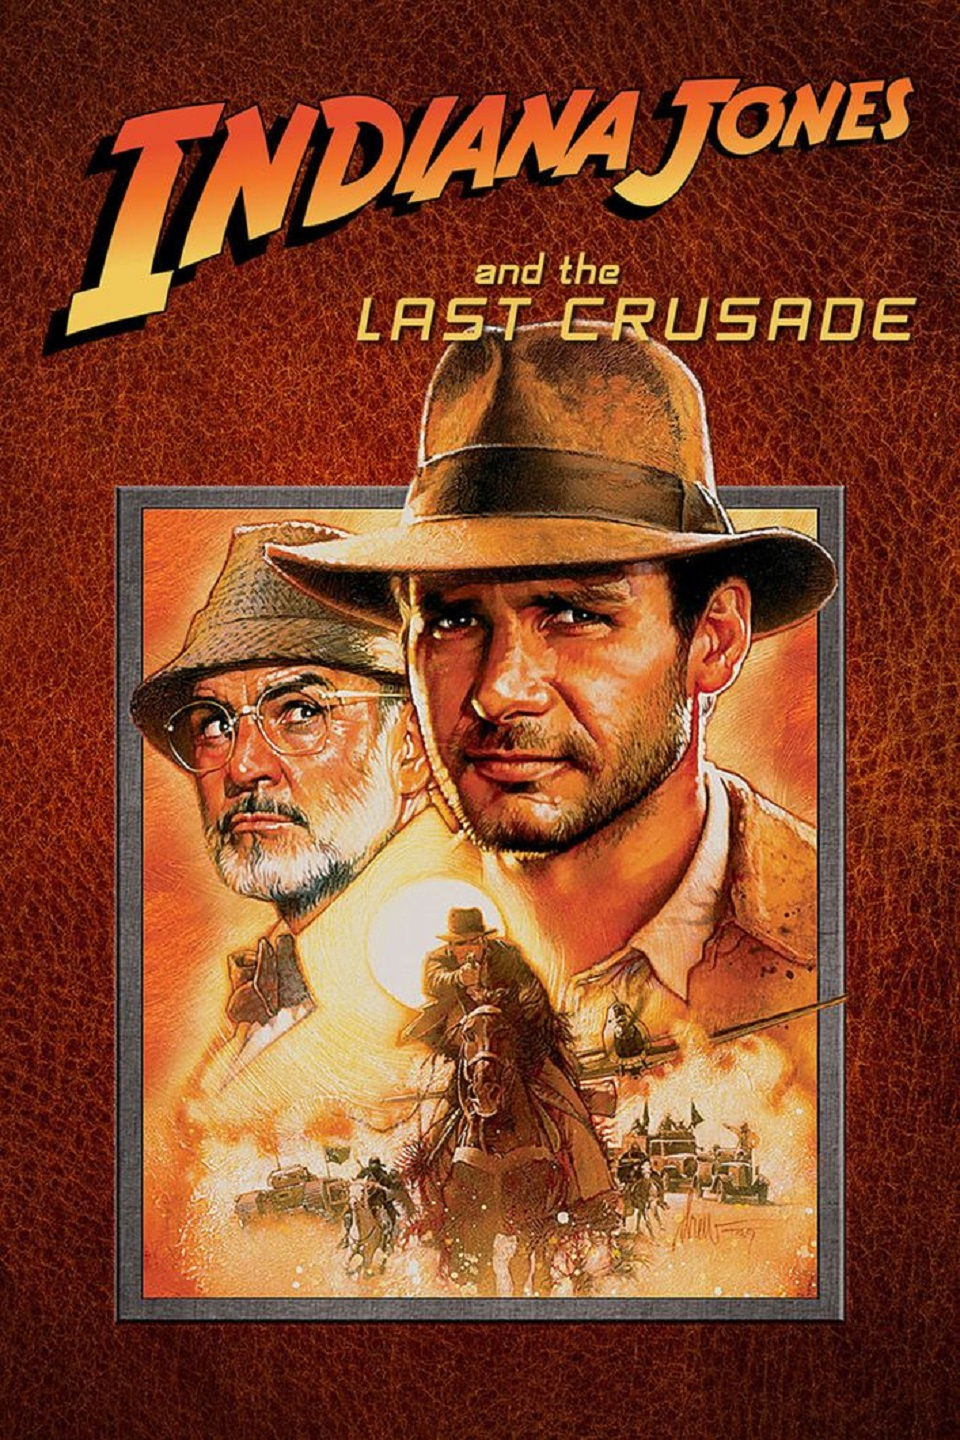 1989-indiana-jones-and-the-last-crusade